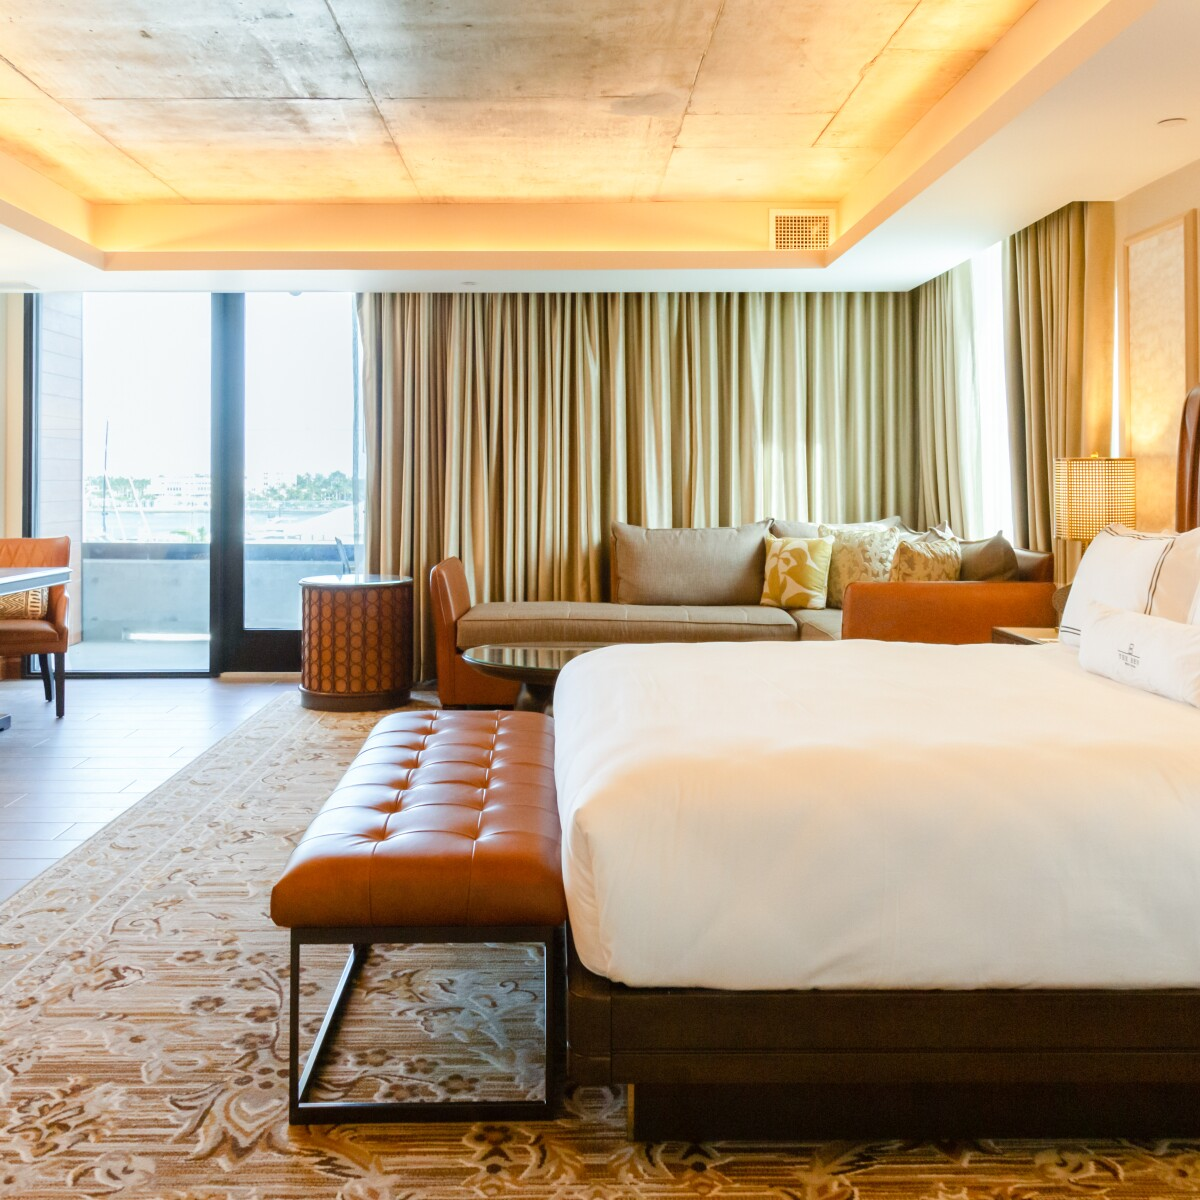 Autograph Collection Hotels Introduces The Ben, The First